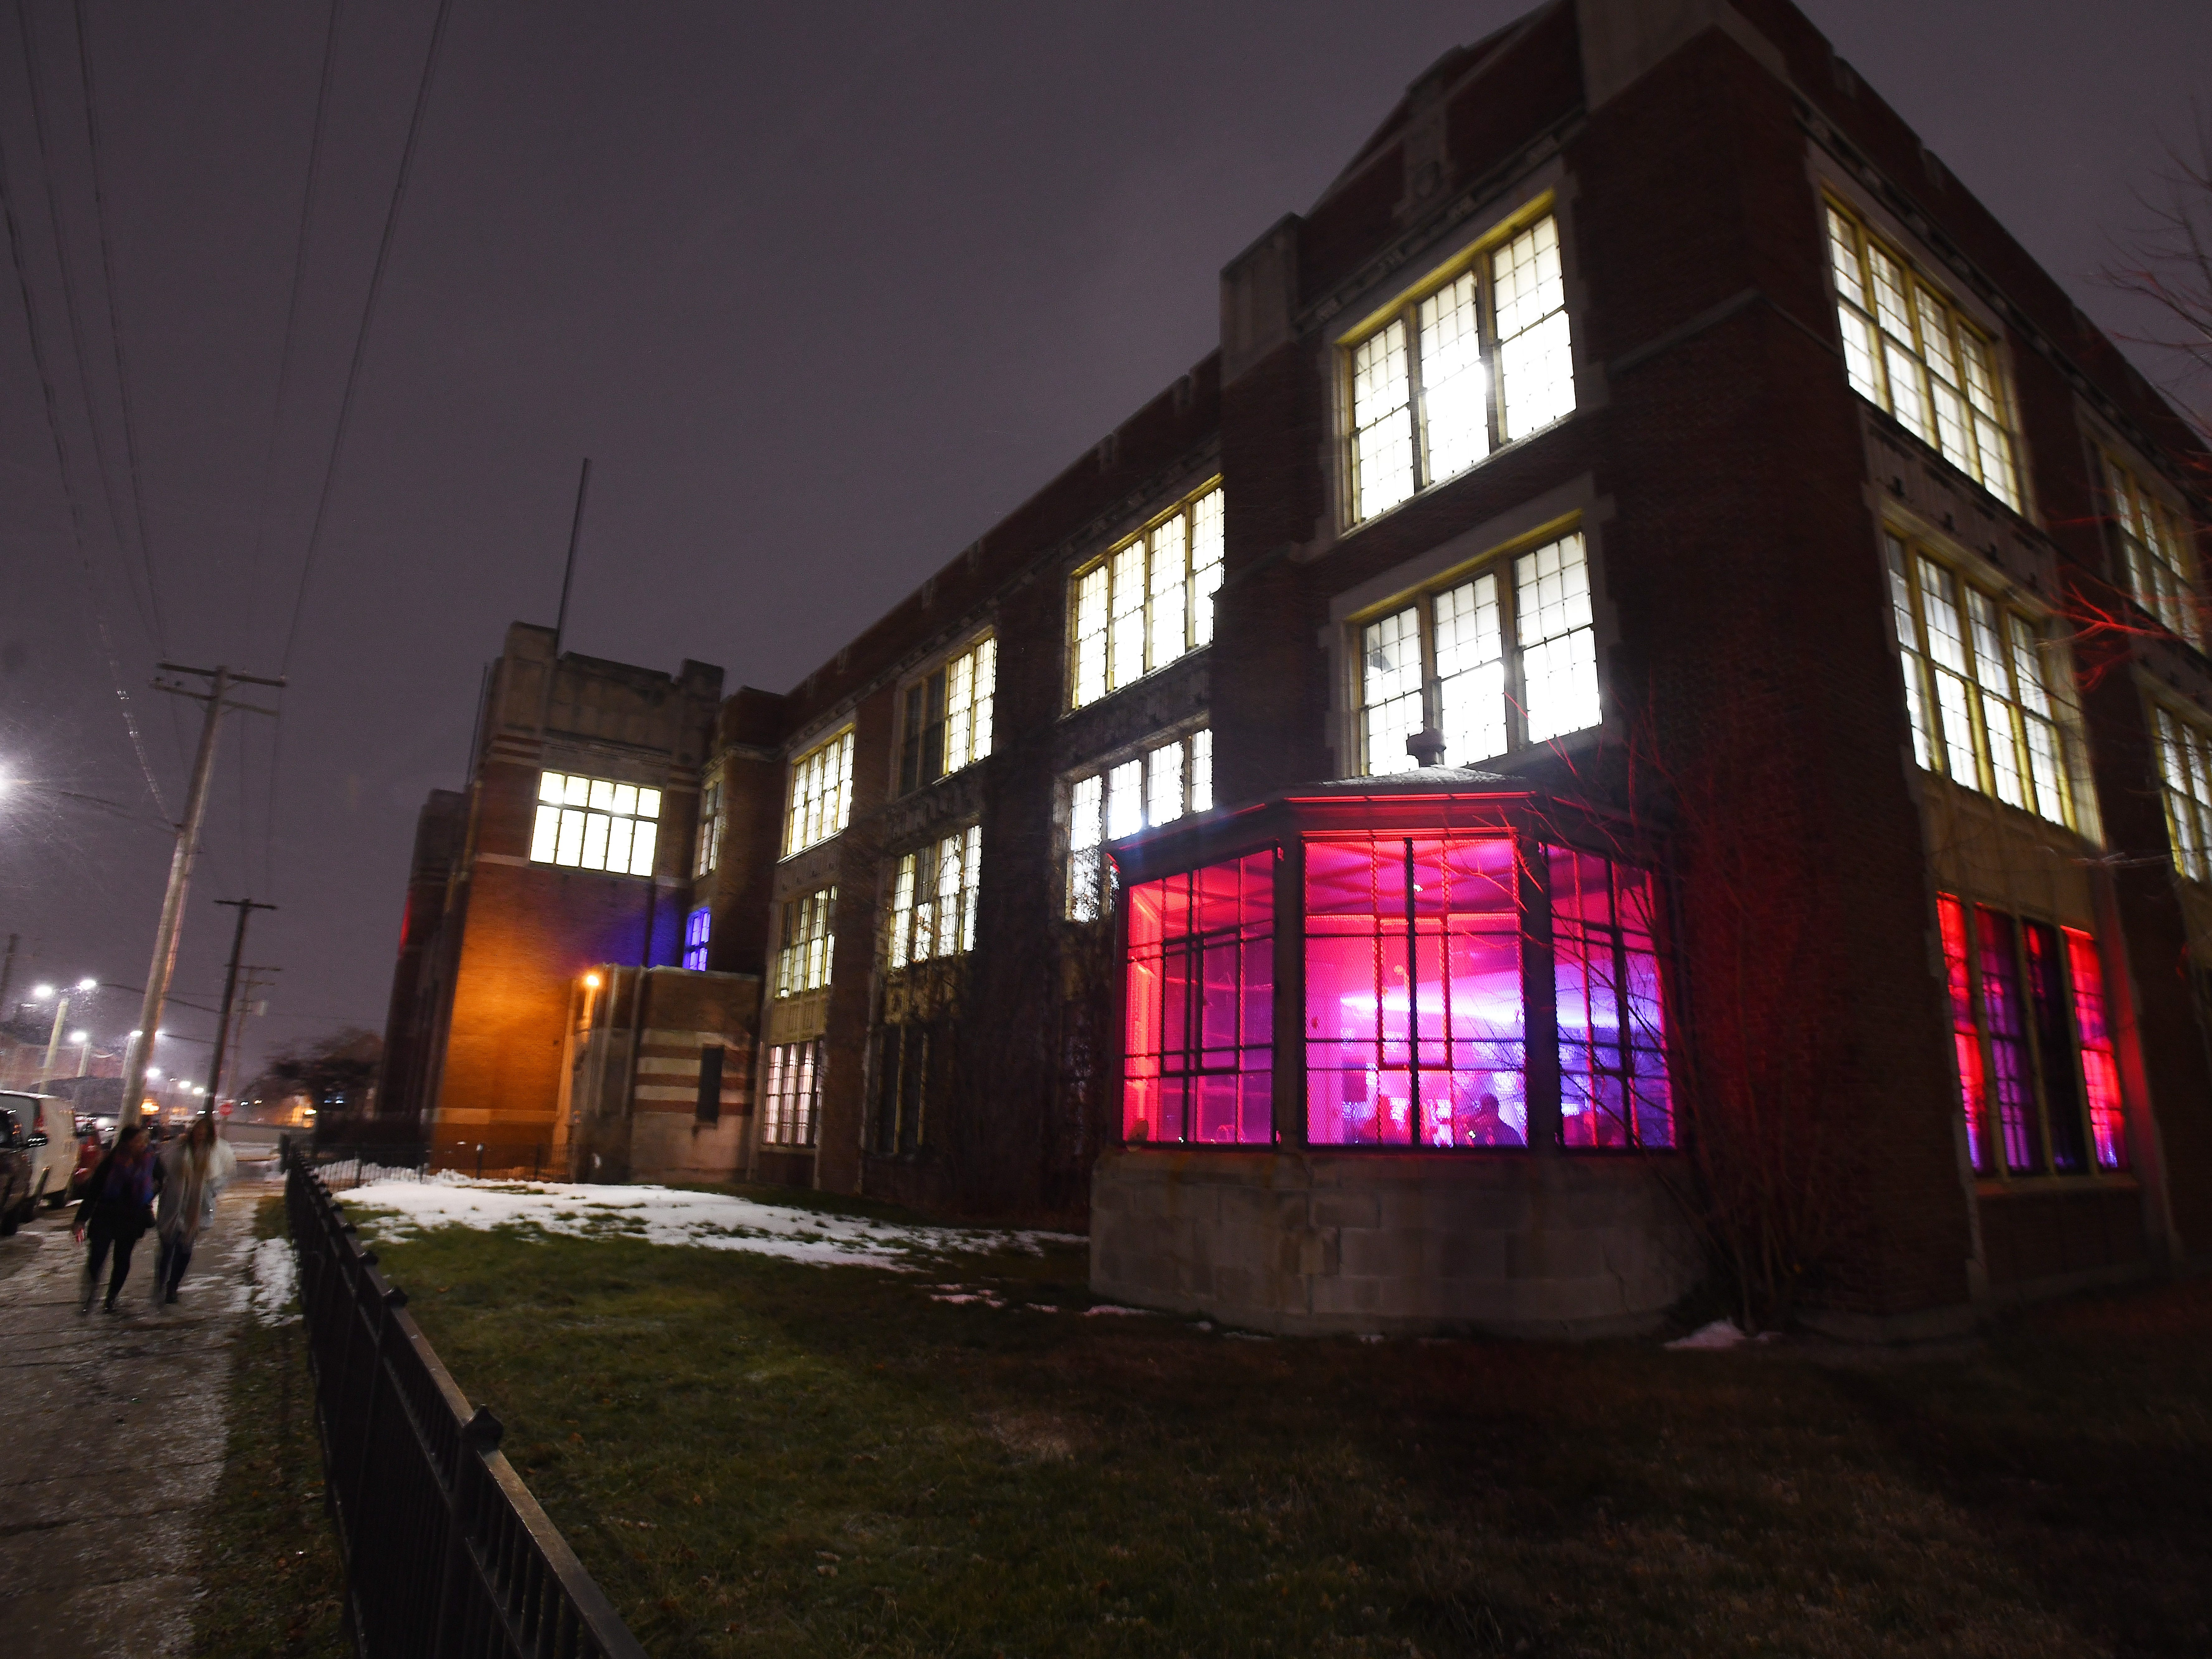 Jefferson school is rocking as the House of Vans pop-up lights up the night in Detroit on Thursday, Jan. 24, 2019.